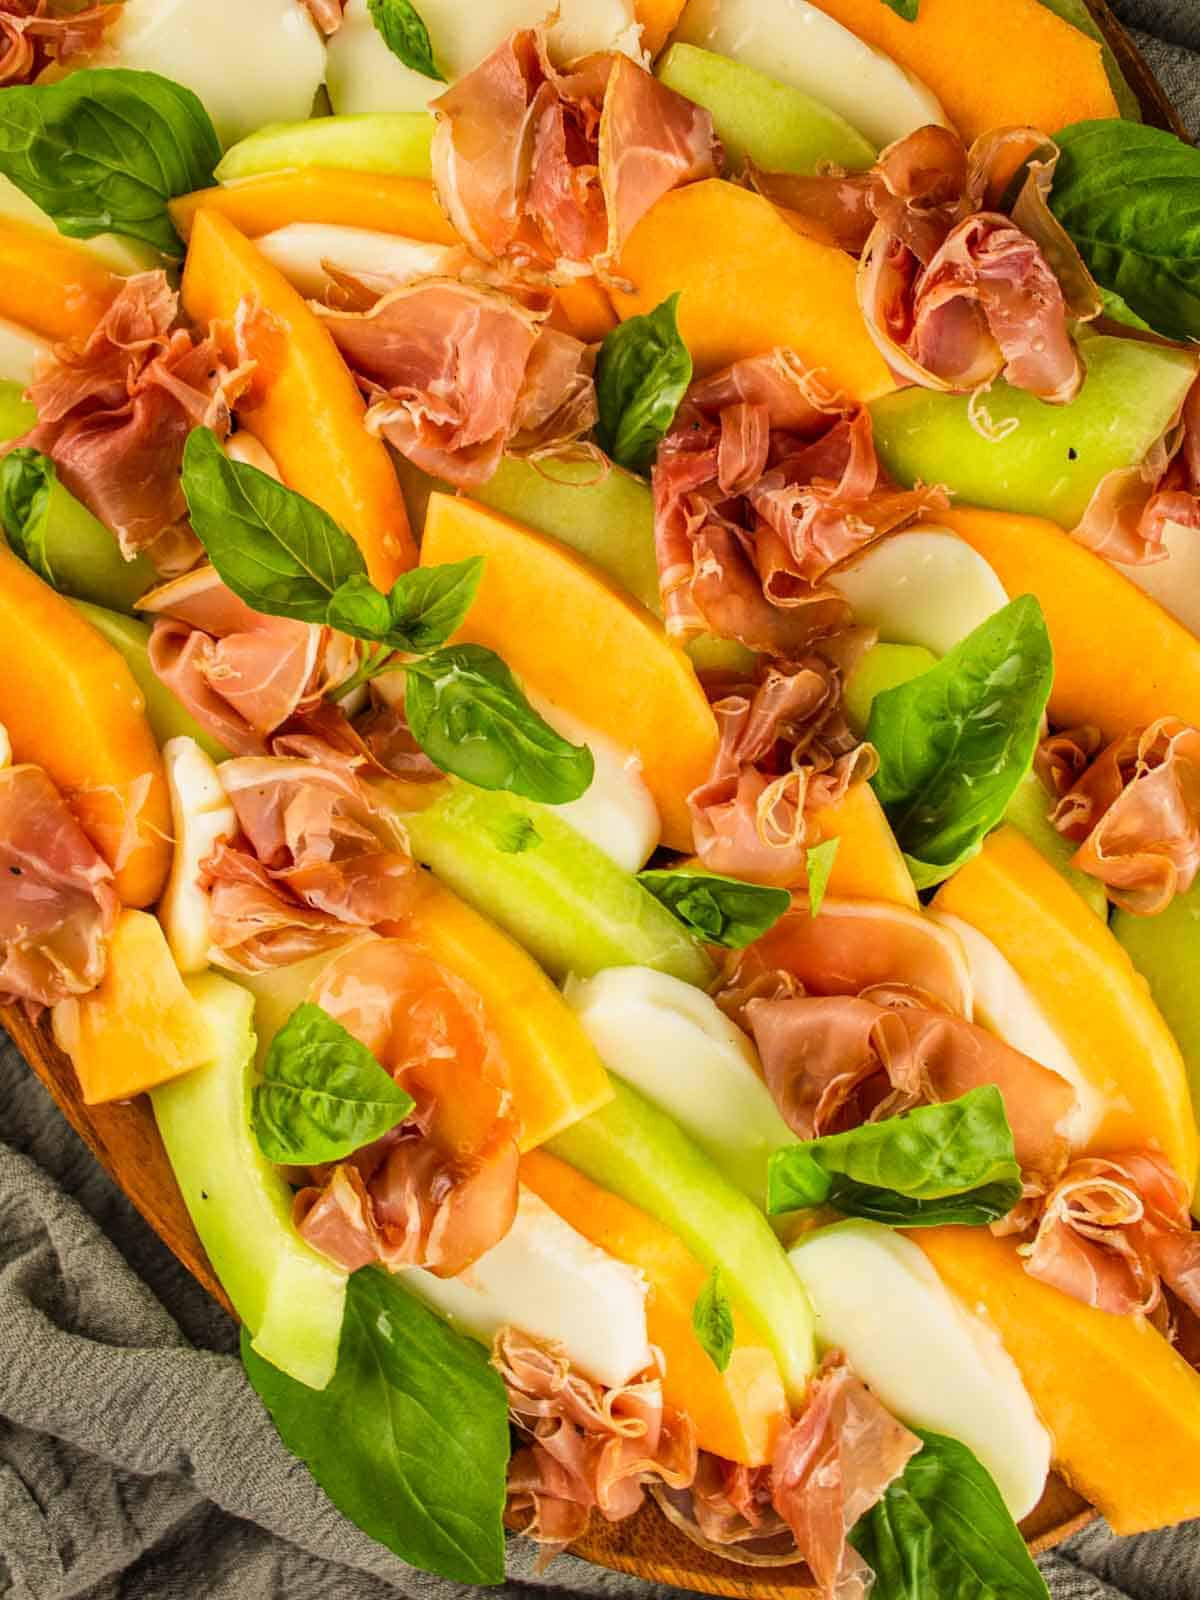 slices of honeydew, cantaloupe and mozzarella layered with thinly sliced prosciutto and fresh basil leaves